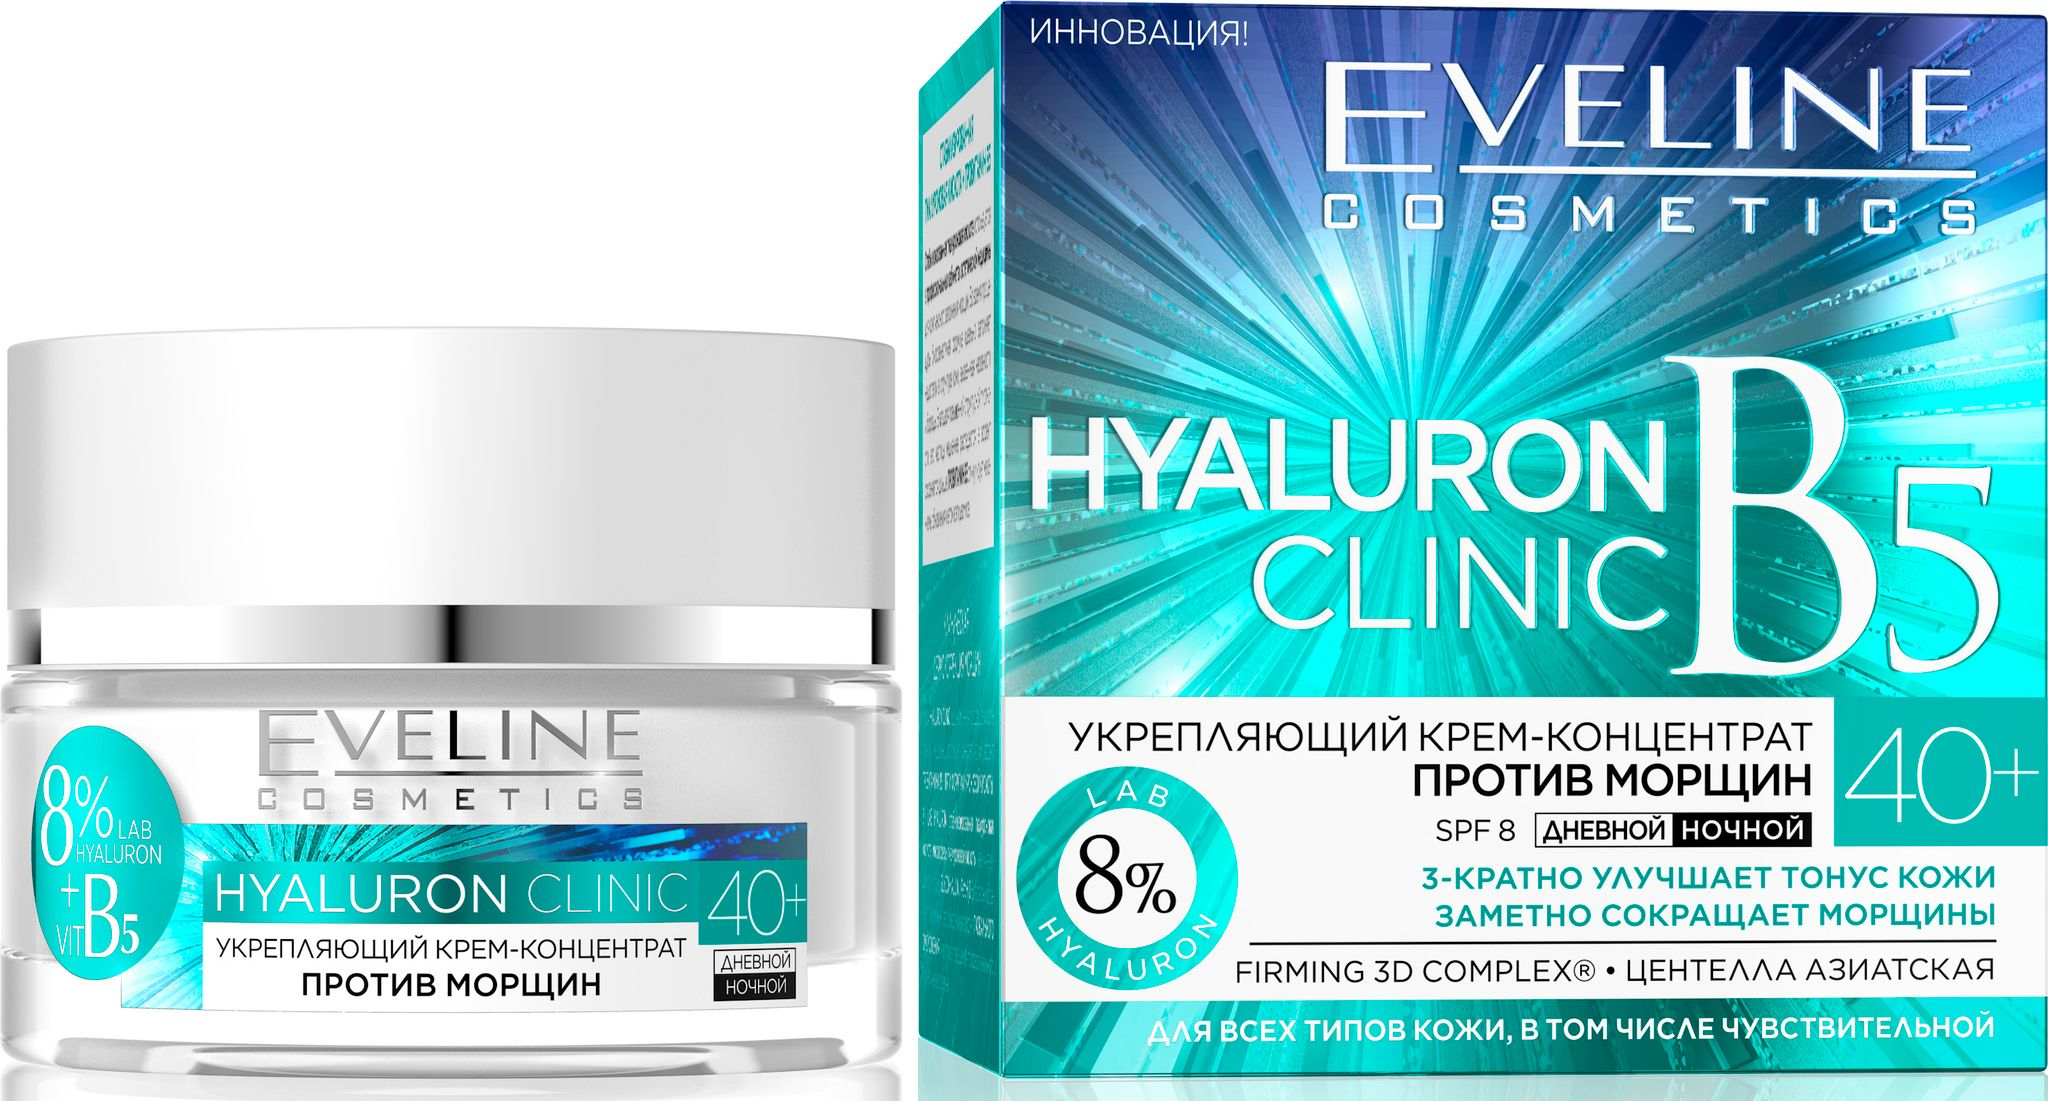 Firming cream-concentrate anti-wrinkle 40+ series hyaluron clinic b5, Nivea, 50 ml